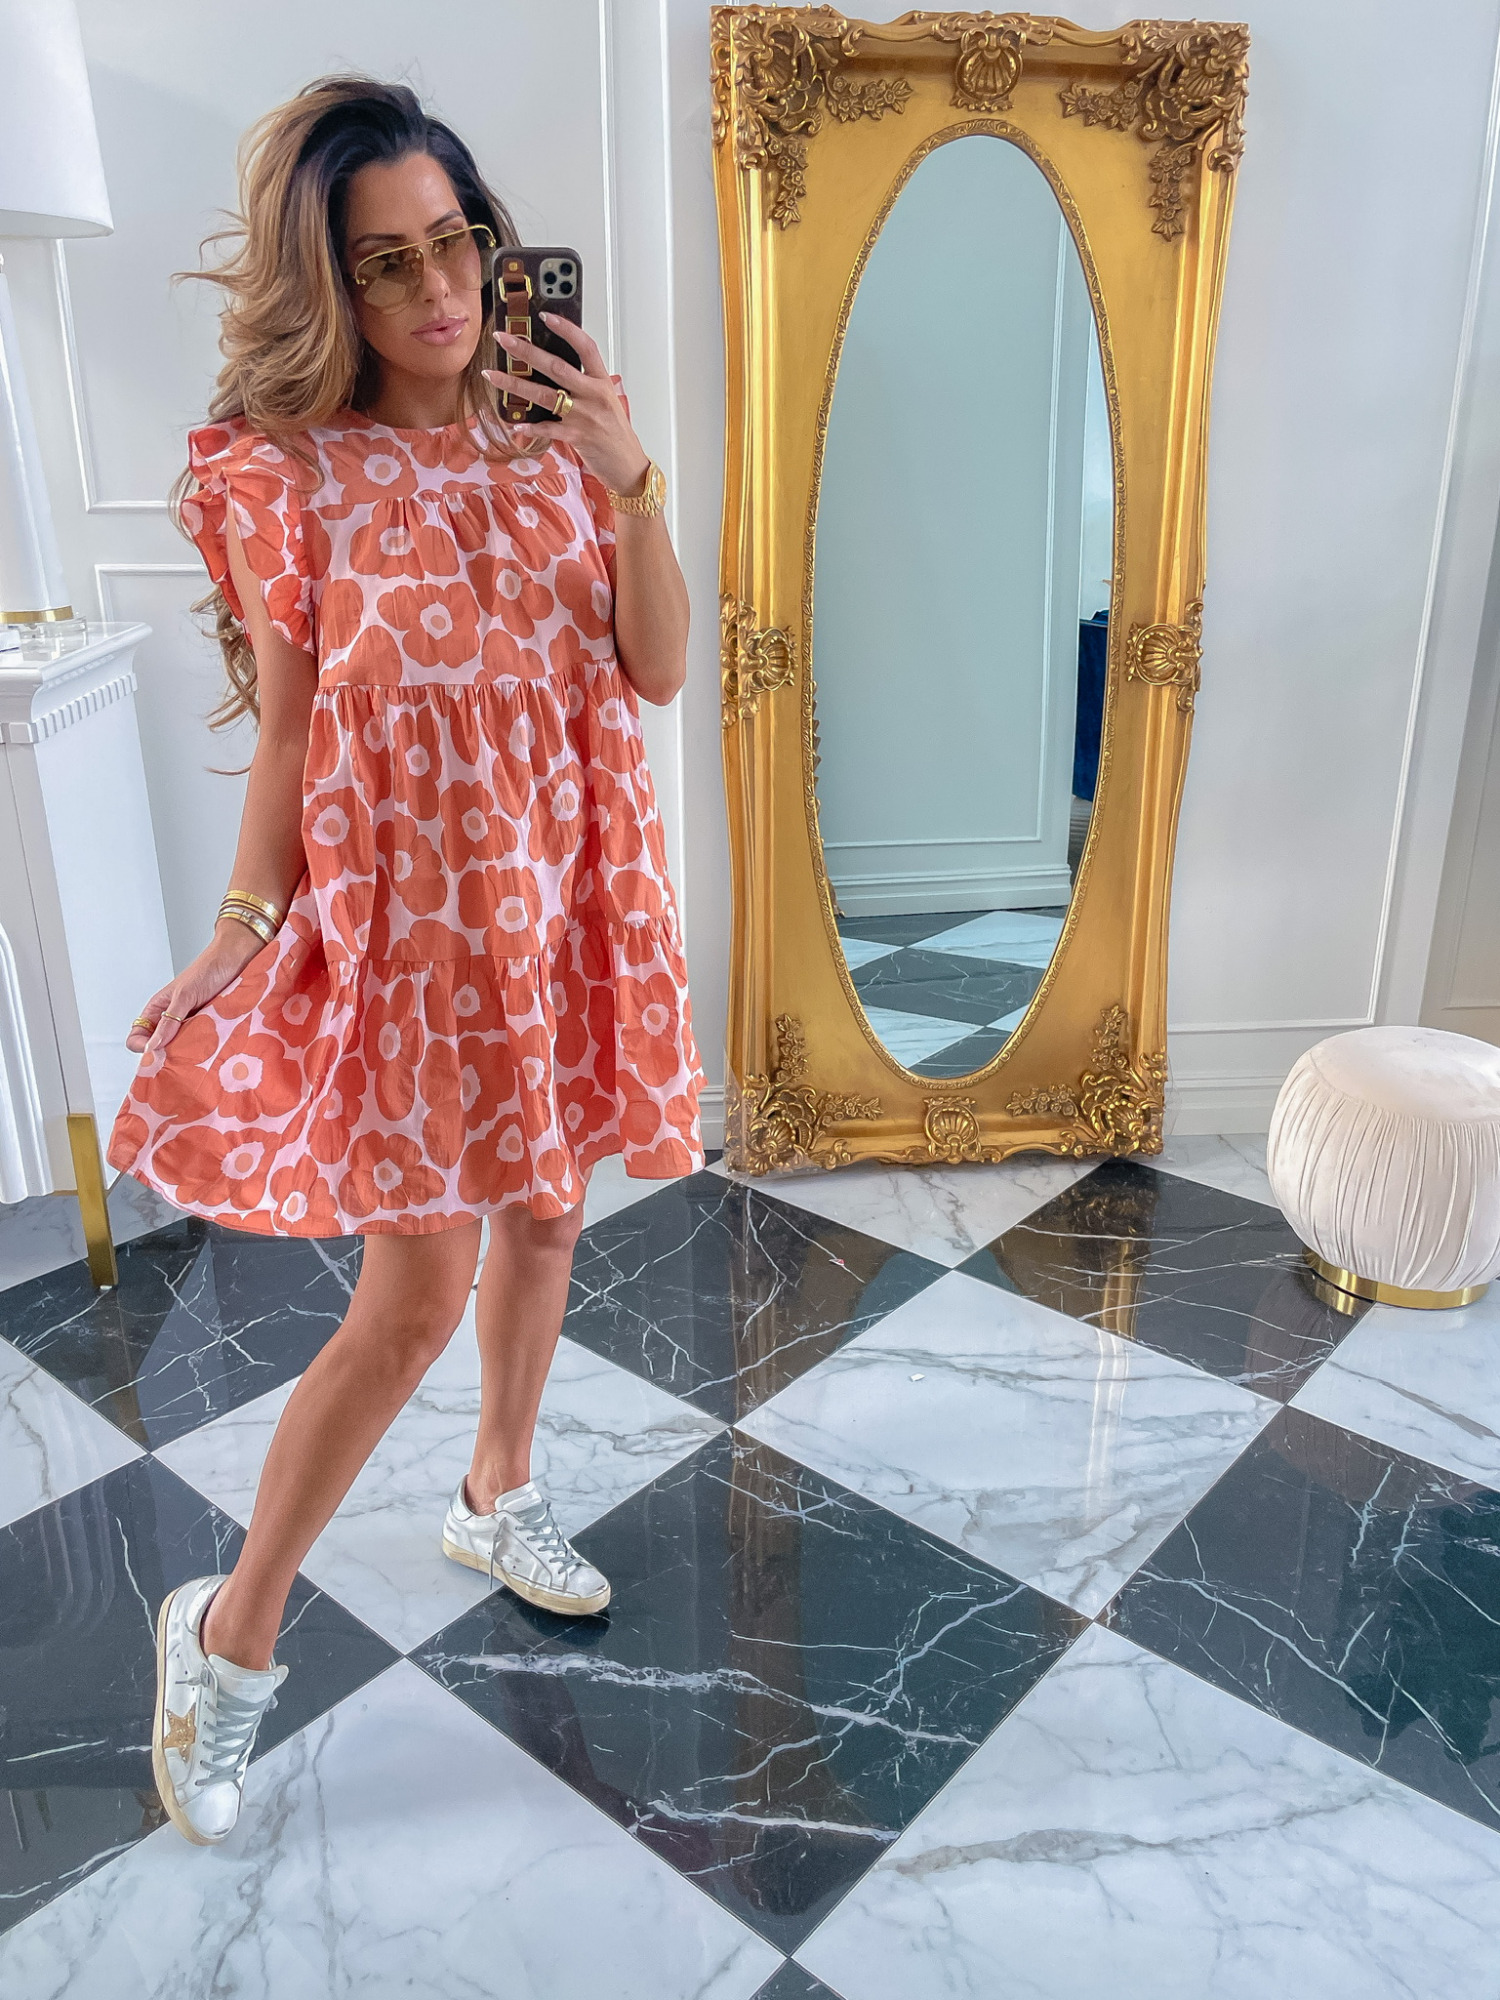 Red Dress Boutique, Red Dress Boutique, Summer Try On Haul, Summer Dress, Casual Summer Outfit Ideas, Golden Goose Sneakers, Louis Vuitton Sunglasses, Emily Ann Gemma   Instagram Recap by popular US life and style blog, The Sweetest Thing: image of Emily Gemma wearing a pink and orange floral print dress, oversized sunglasses, and Golden Goose sneakers.